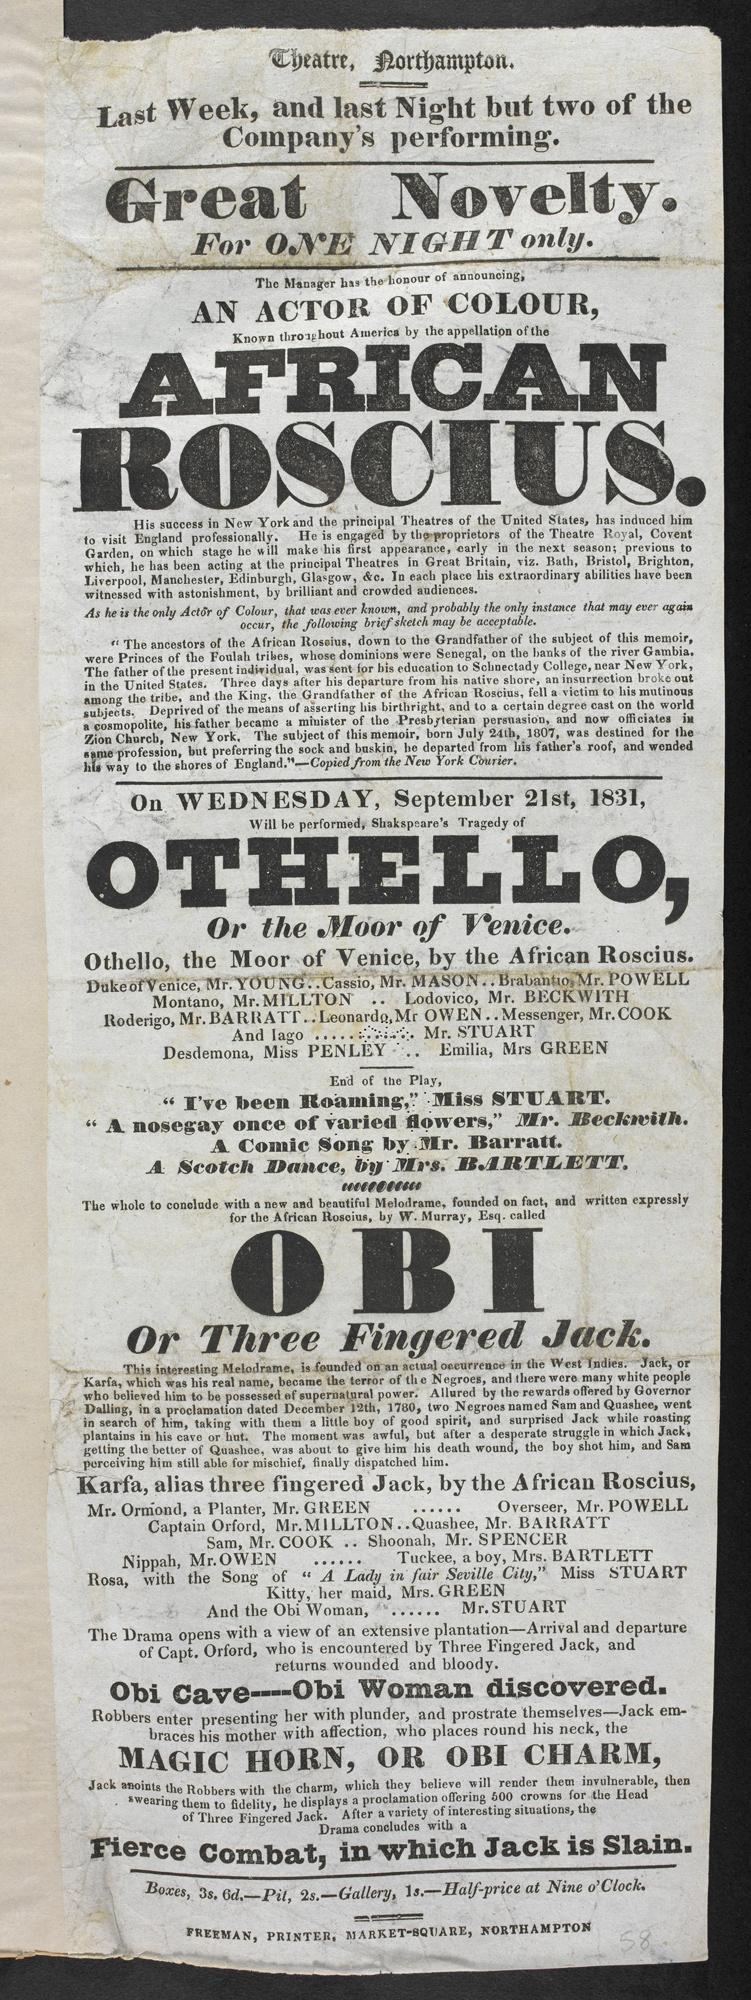 Playbill advertising Ira Aldridge's appearance as Othello in Northampton, 1831